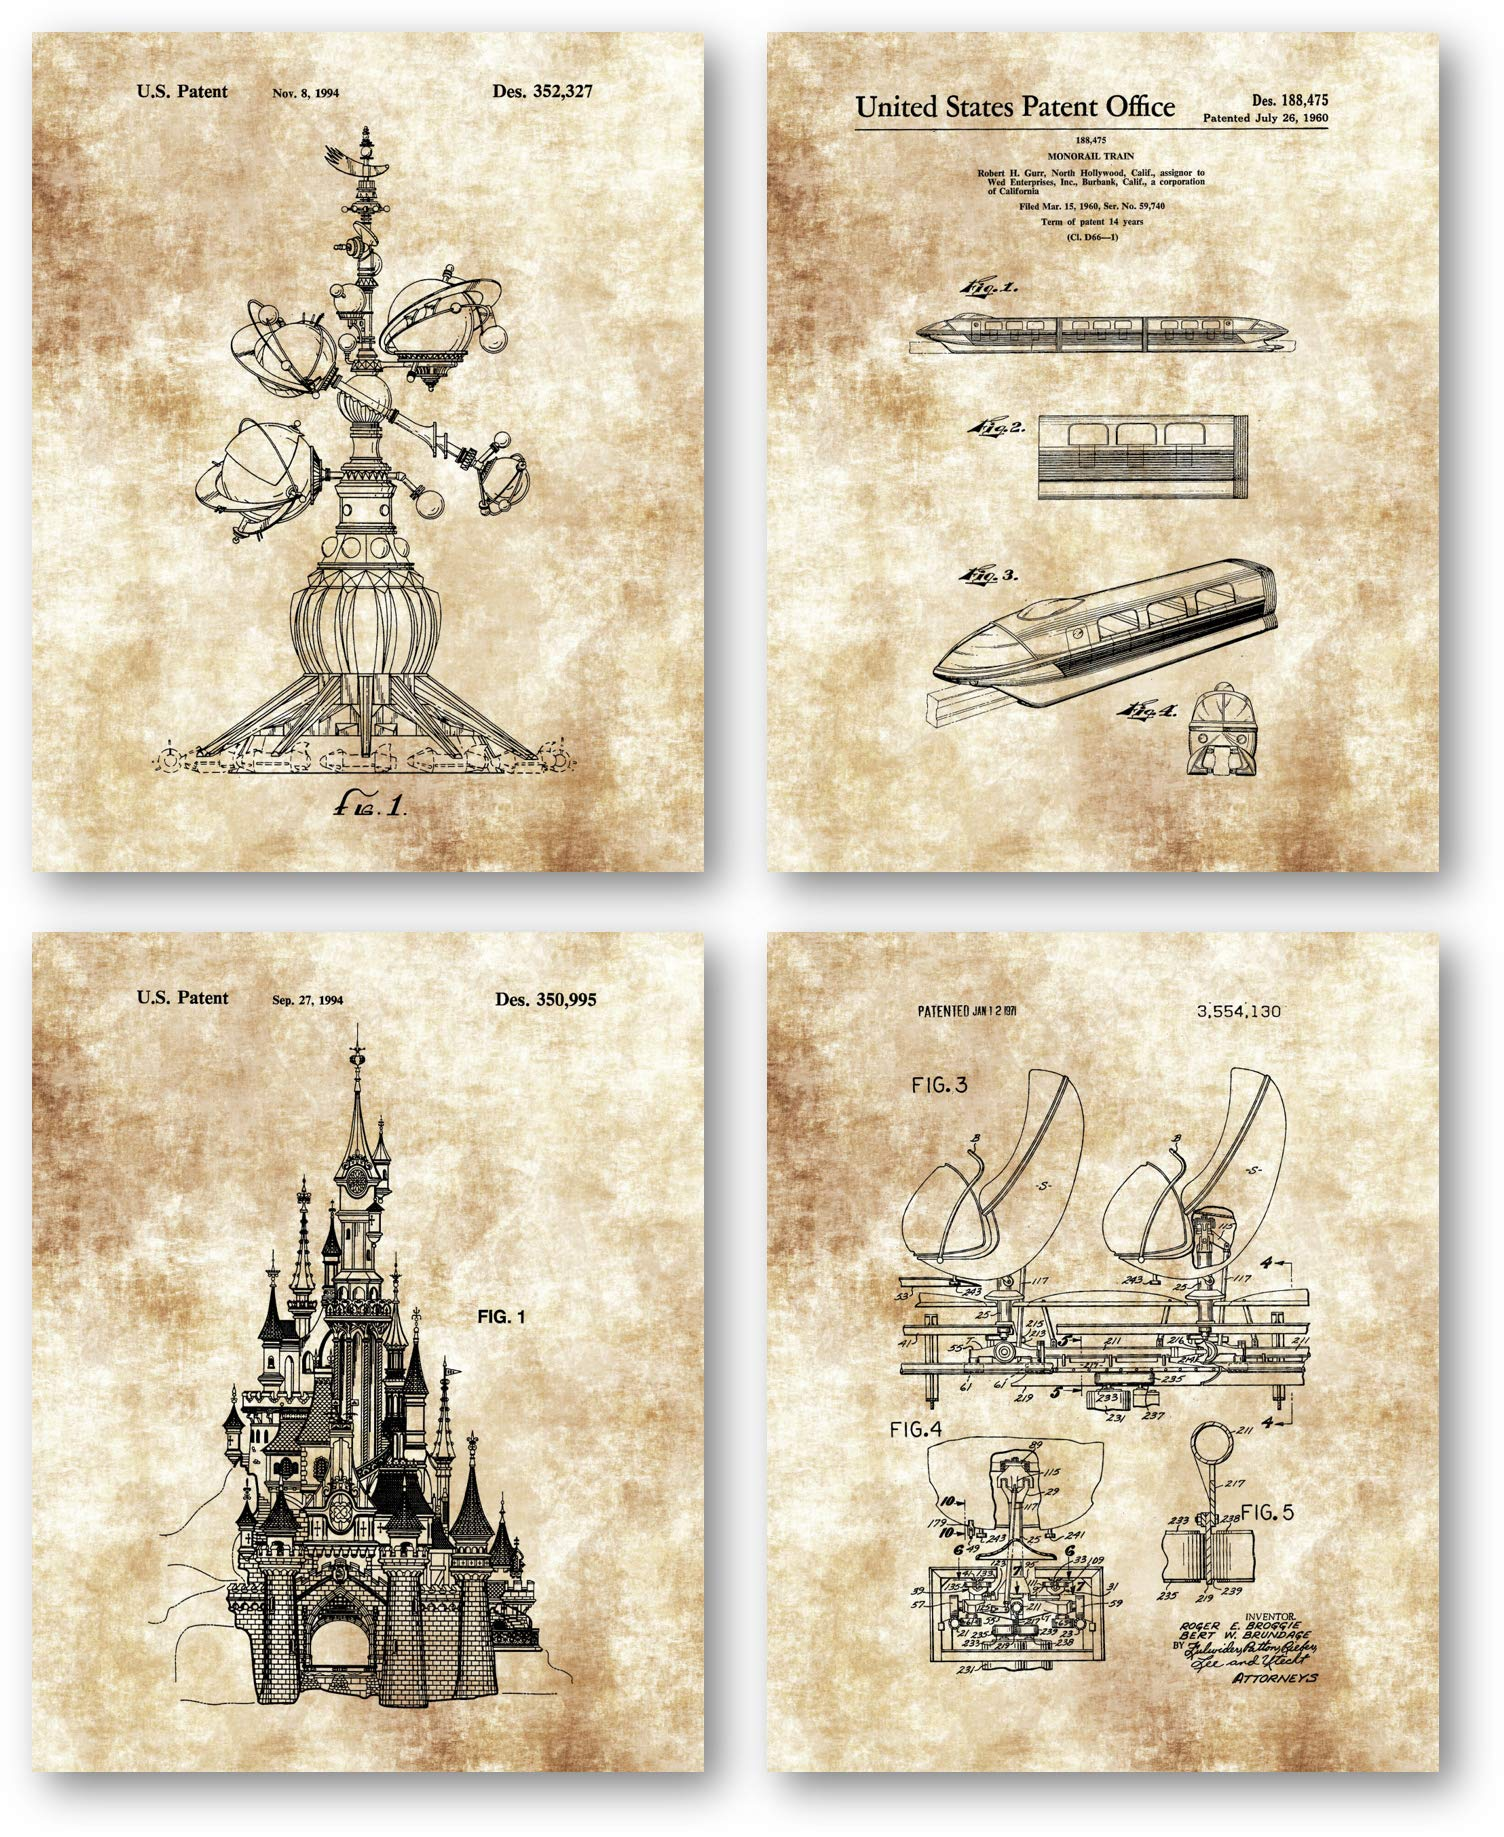 Original Disney Rides Patent Art Prints Drawings - Set of 4 8 x 10 Unframed Prints - Great Gift for Disney Fans and Collectors - Home Office Artwork